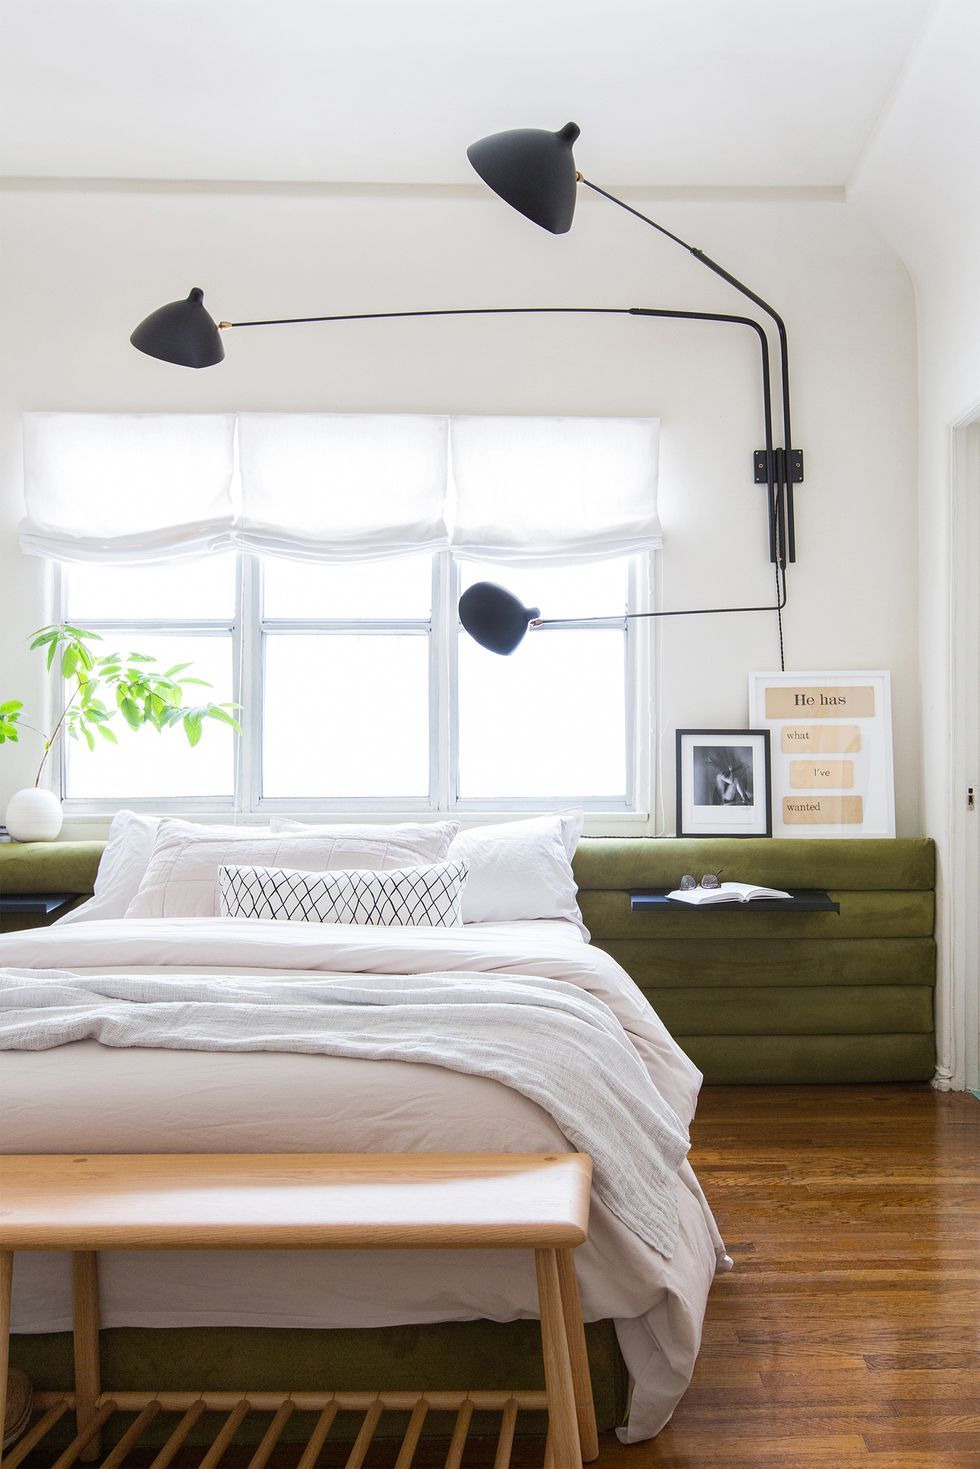 small bedroom ideas design by brady tolbert for ehd photographer by tessa neustadt 1